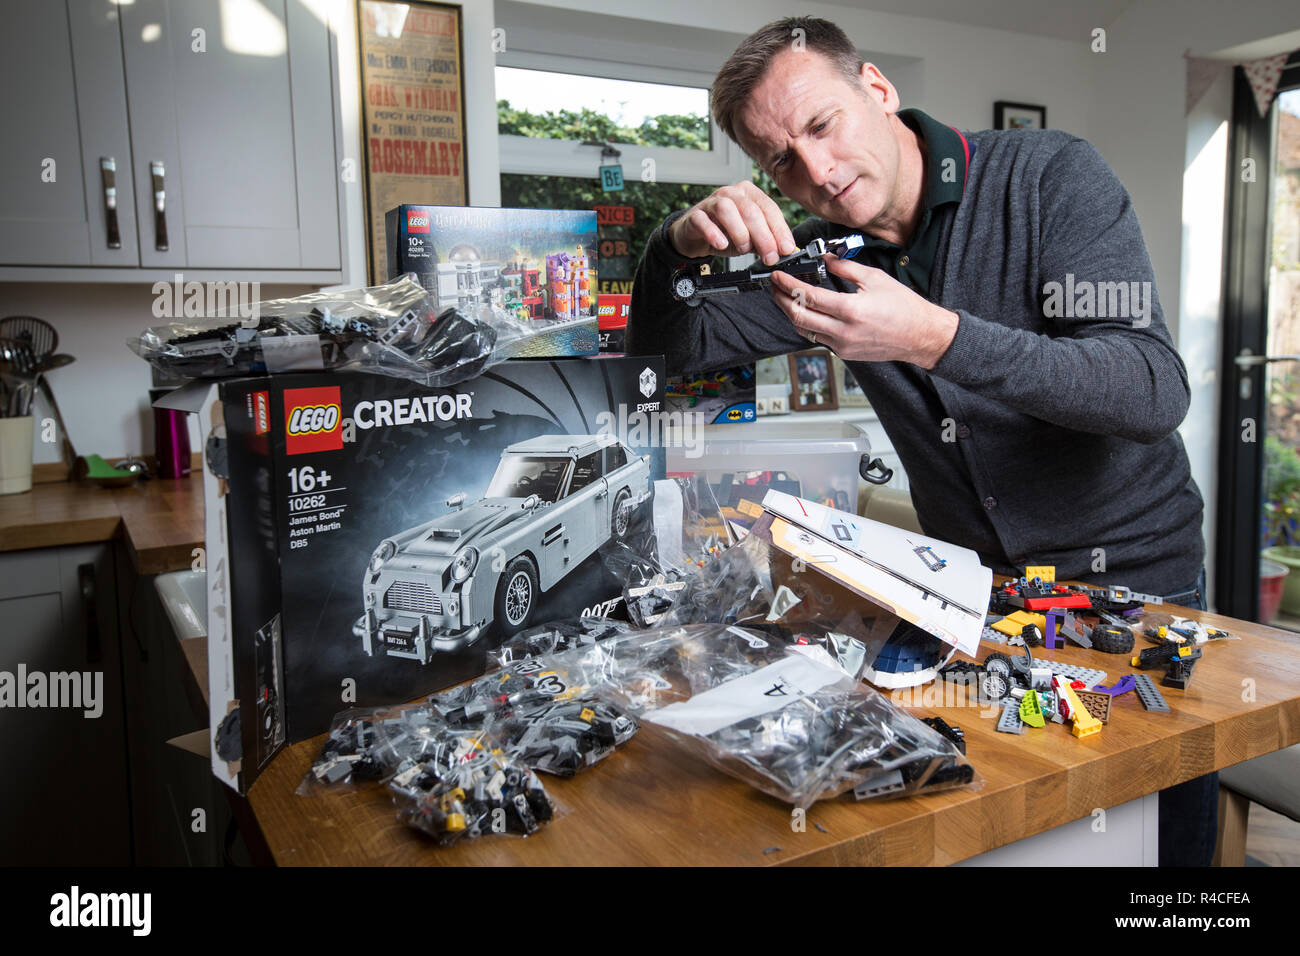 Middle aged man building Lego at home in England, as grown ups are admitting to addiction to the brick-building phenomenon, United Kingdom. - Stock Image